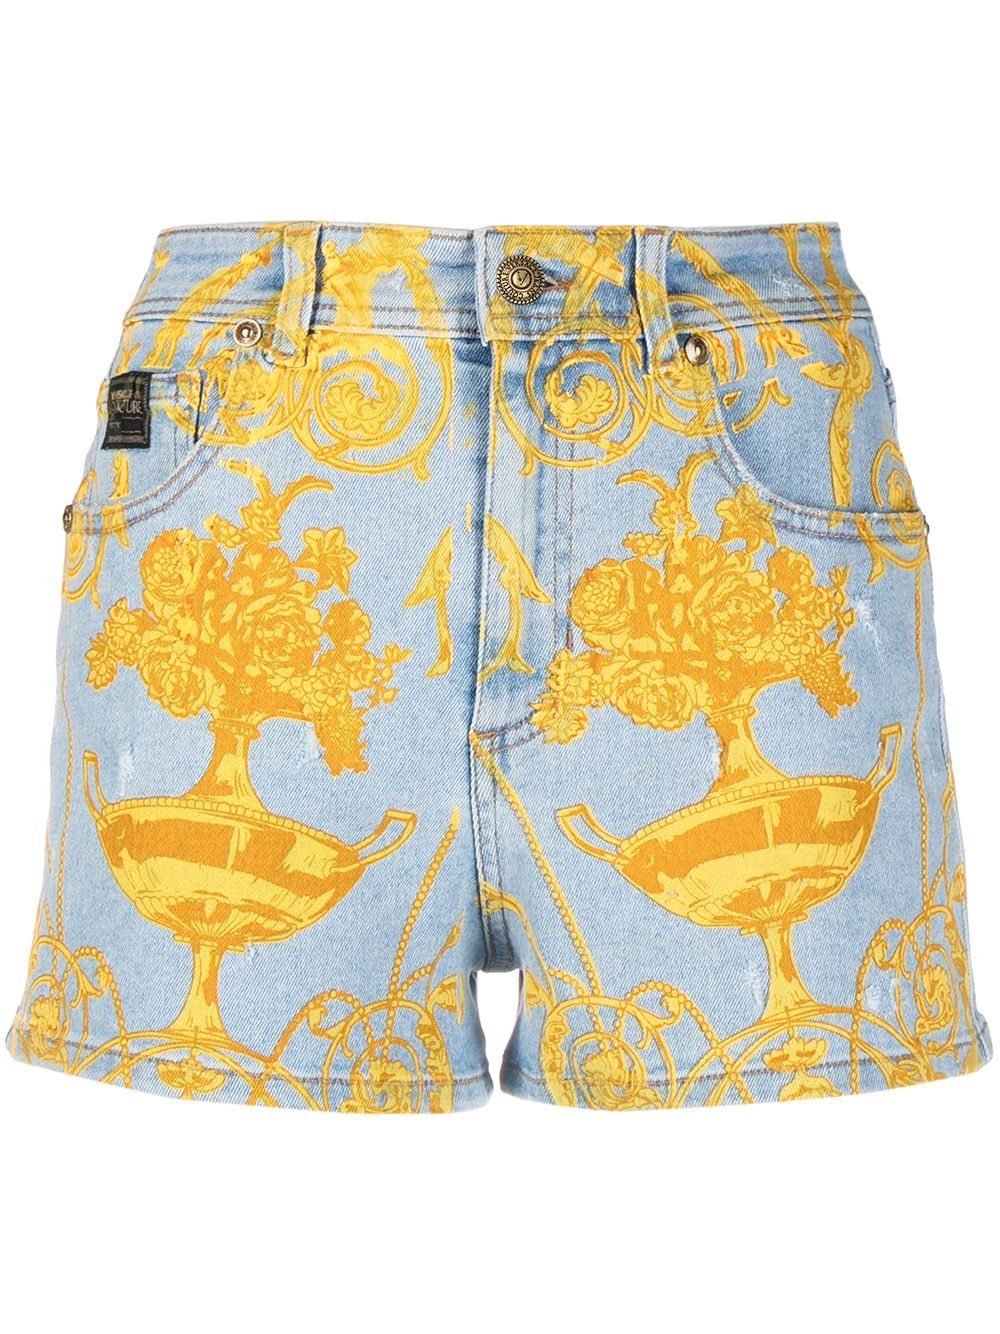 VERSACE JEANS COUTURE      A3.HWA10T.AR97W904